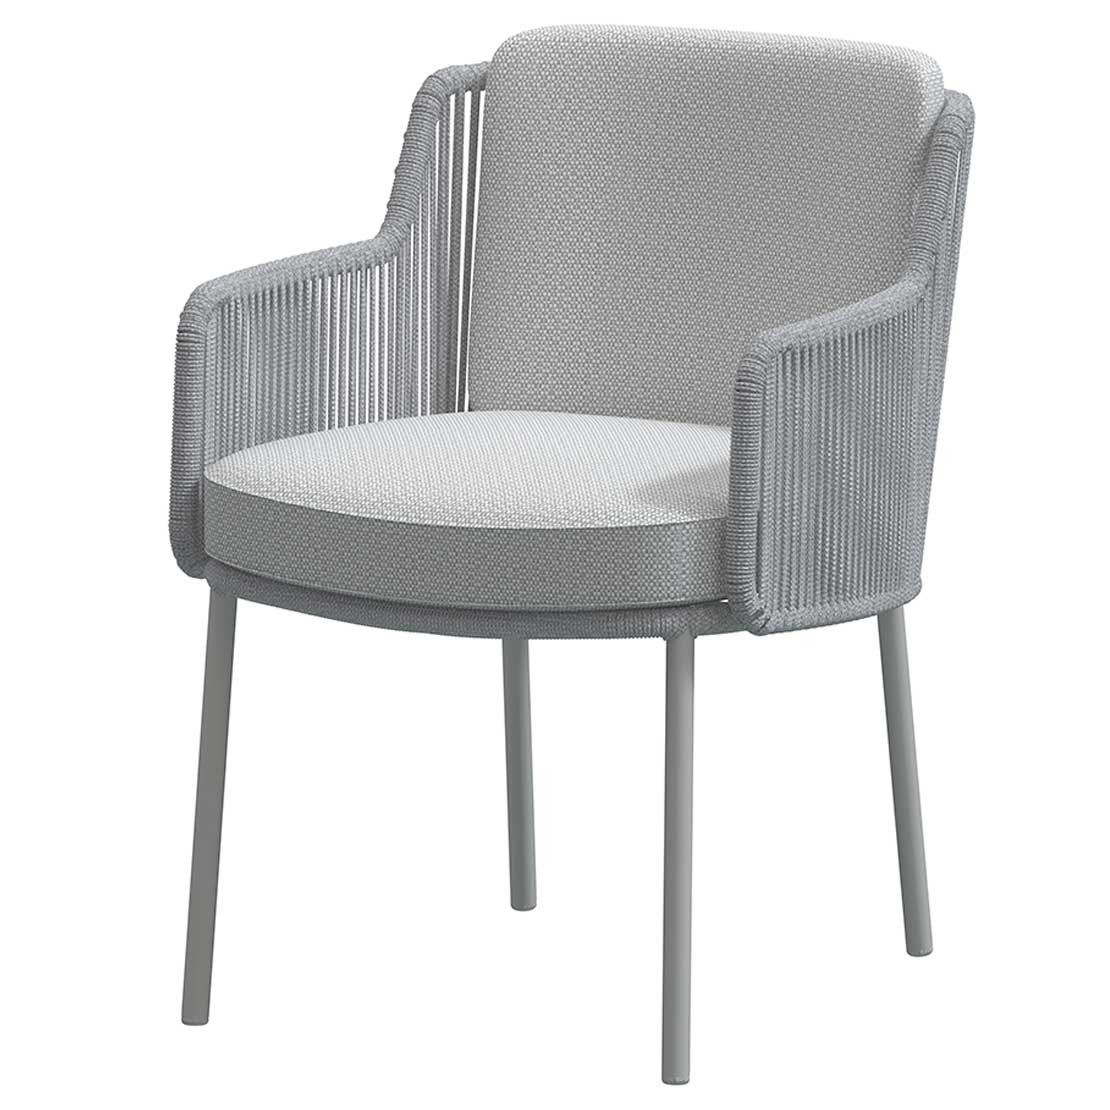 Bernini dining chair Frozen with 2 cushions